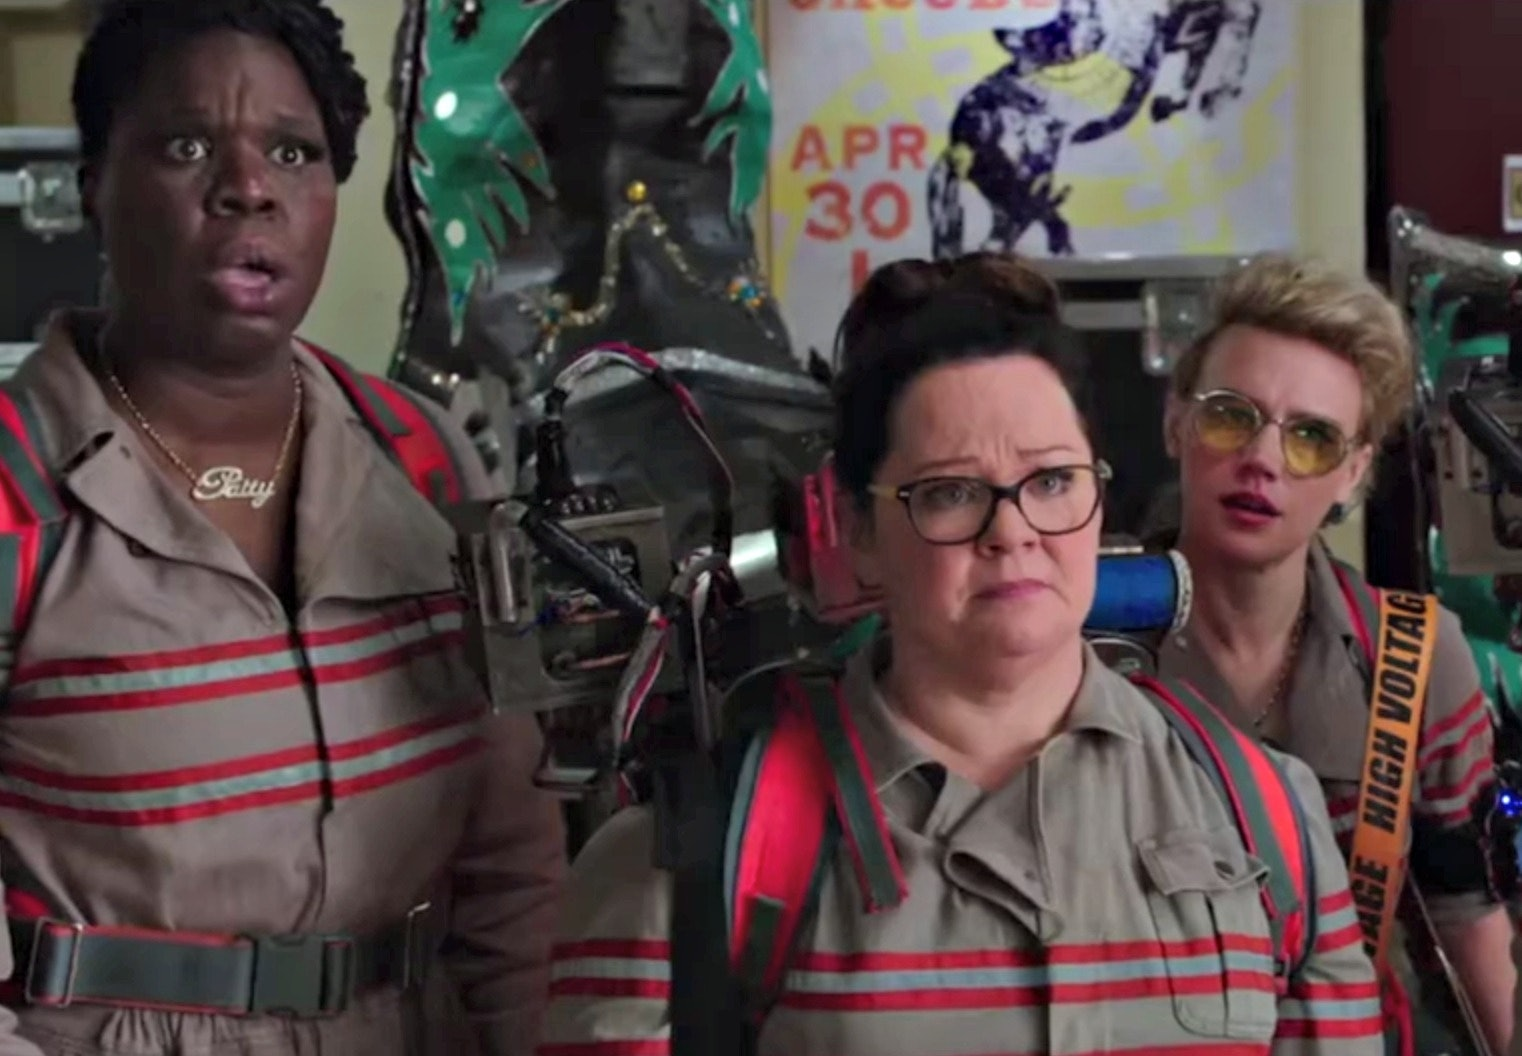 New all-female 'Ghostbusters' laugh-out-loud amusing